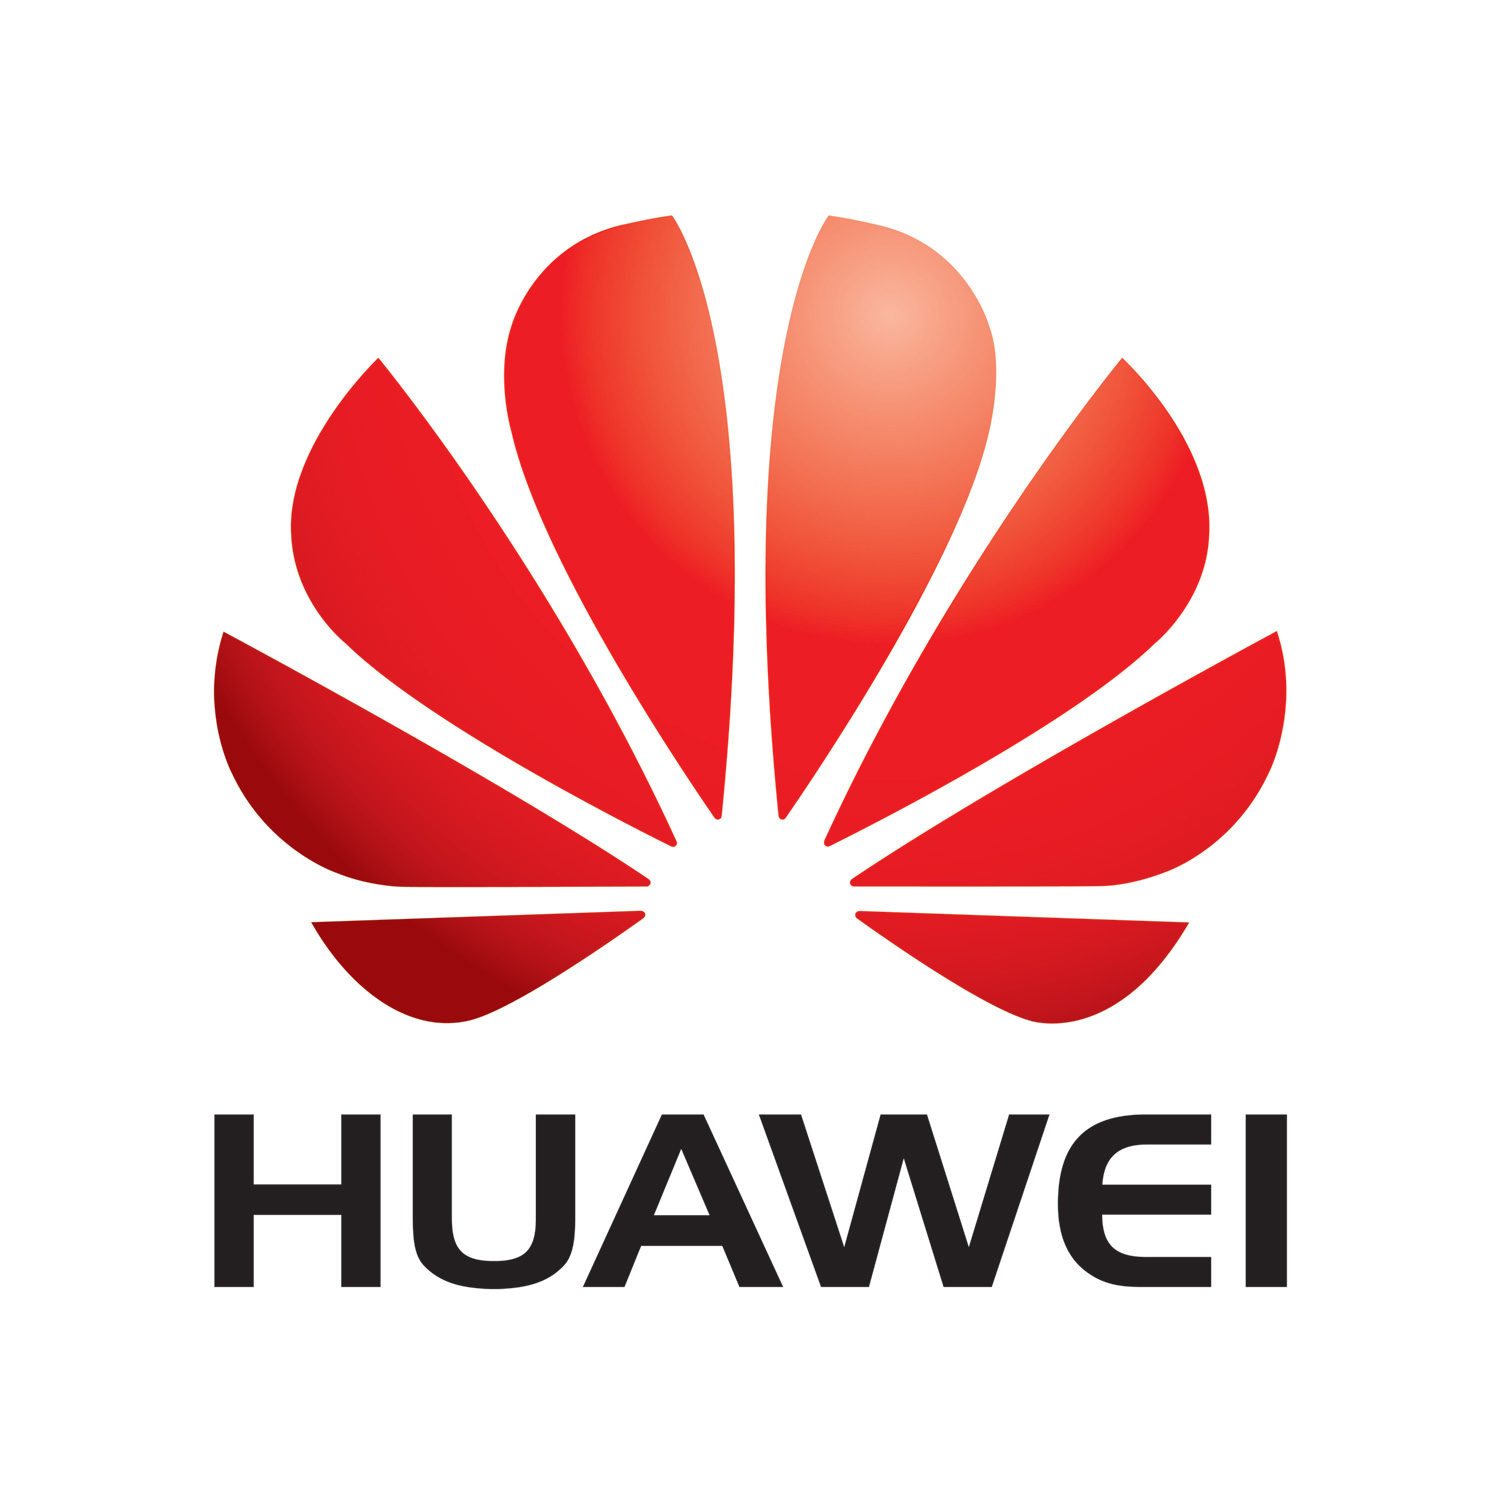 Huawei partner offered embargoed HP gear to Iran